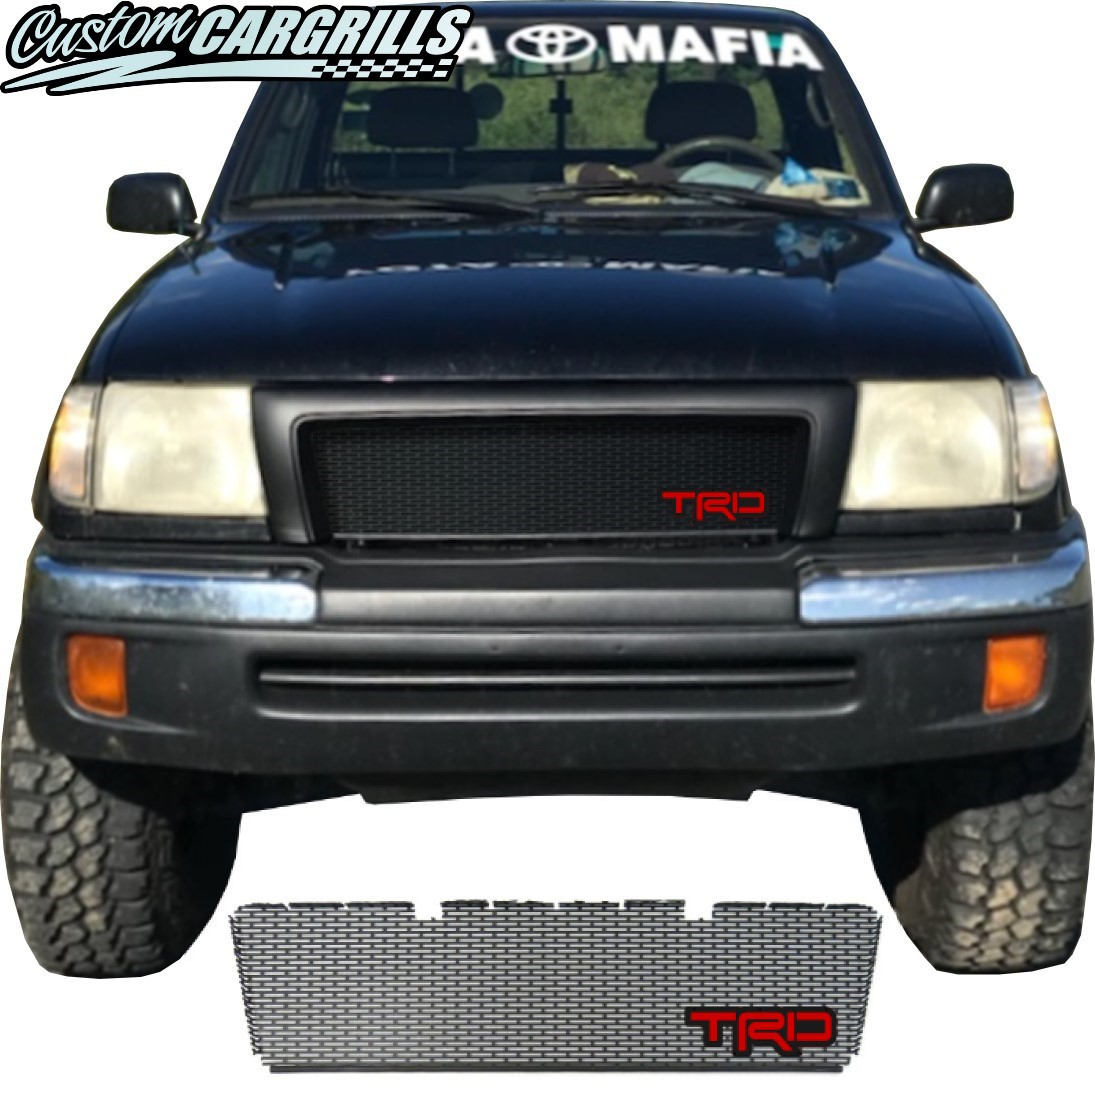 1998-2000 Toyota Tacoma Grill Mesh With TRD Emblem